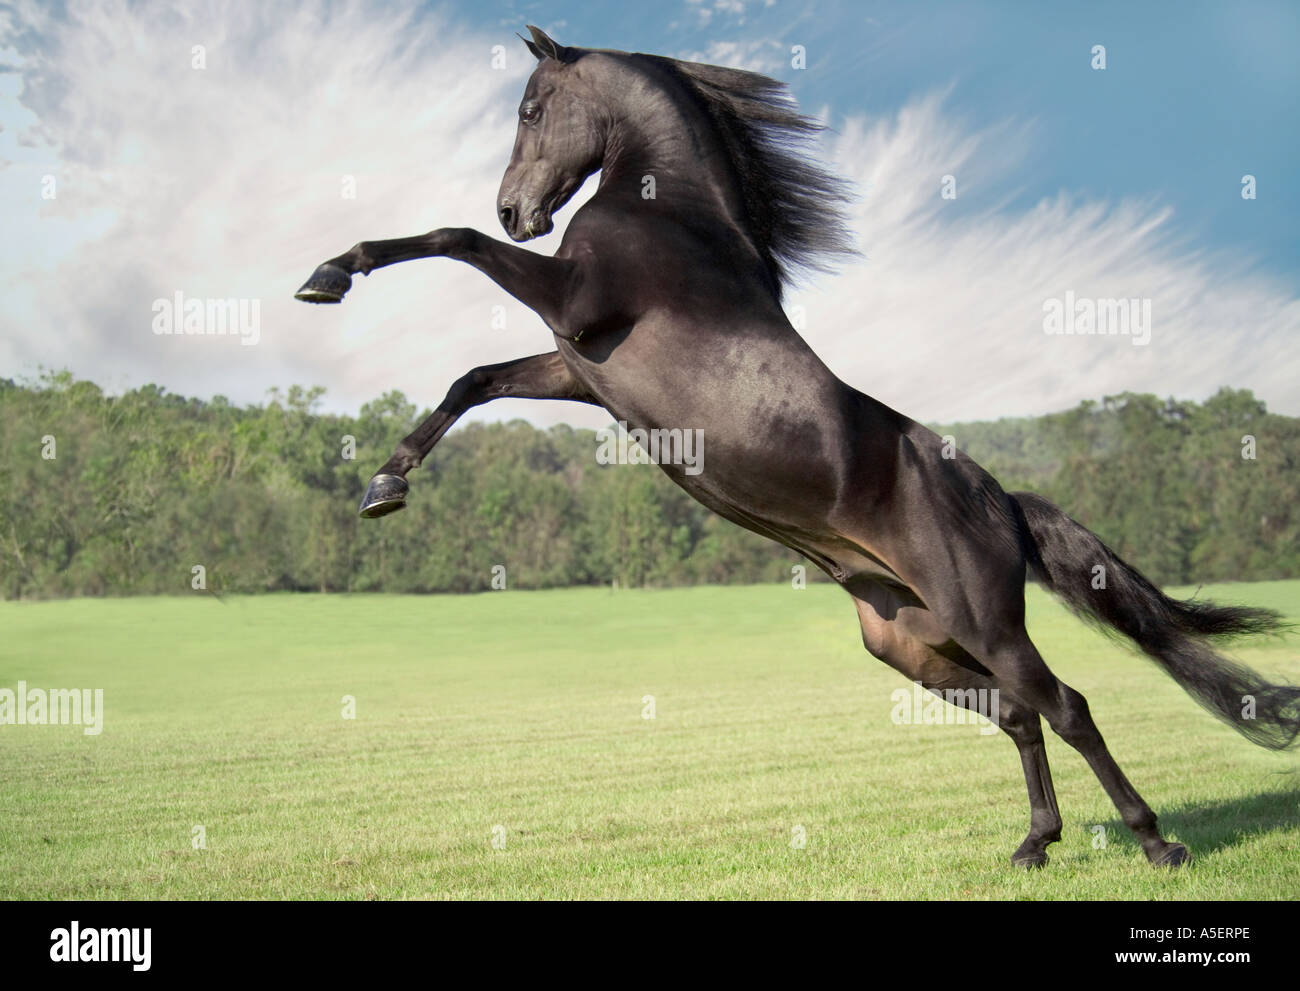 Rearing and leaping Morgan Horse stallion. - Stock Image